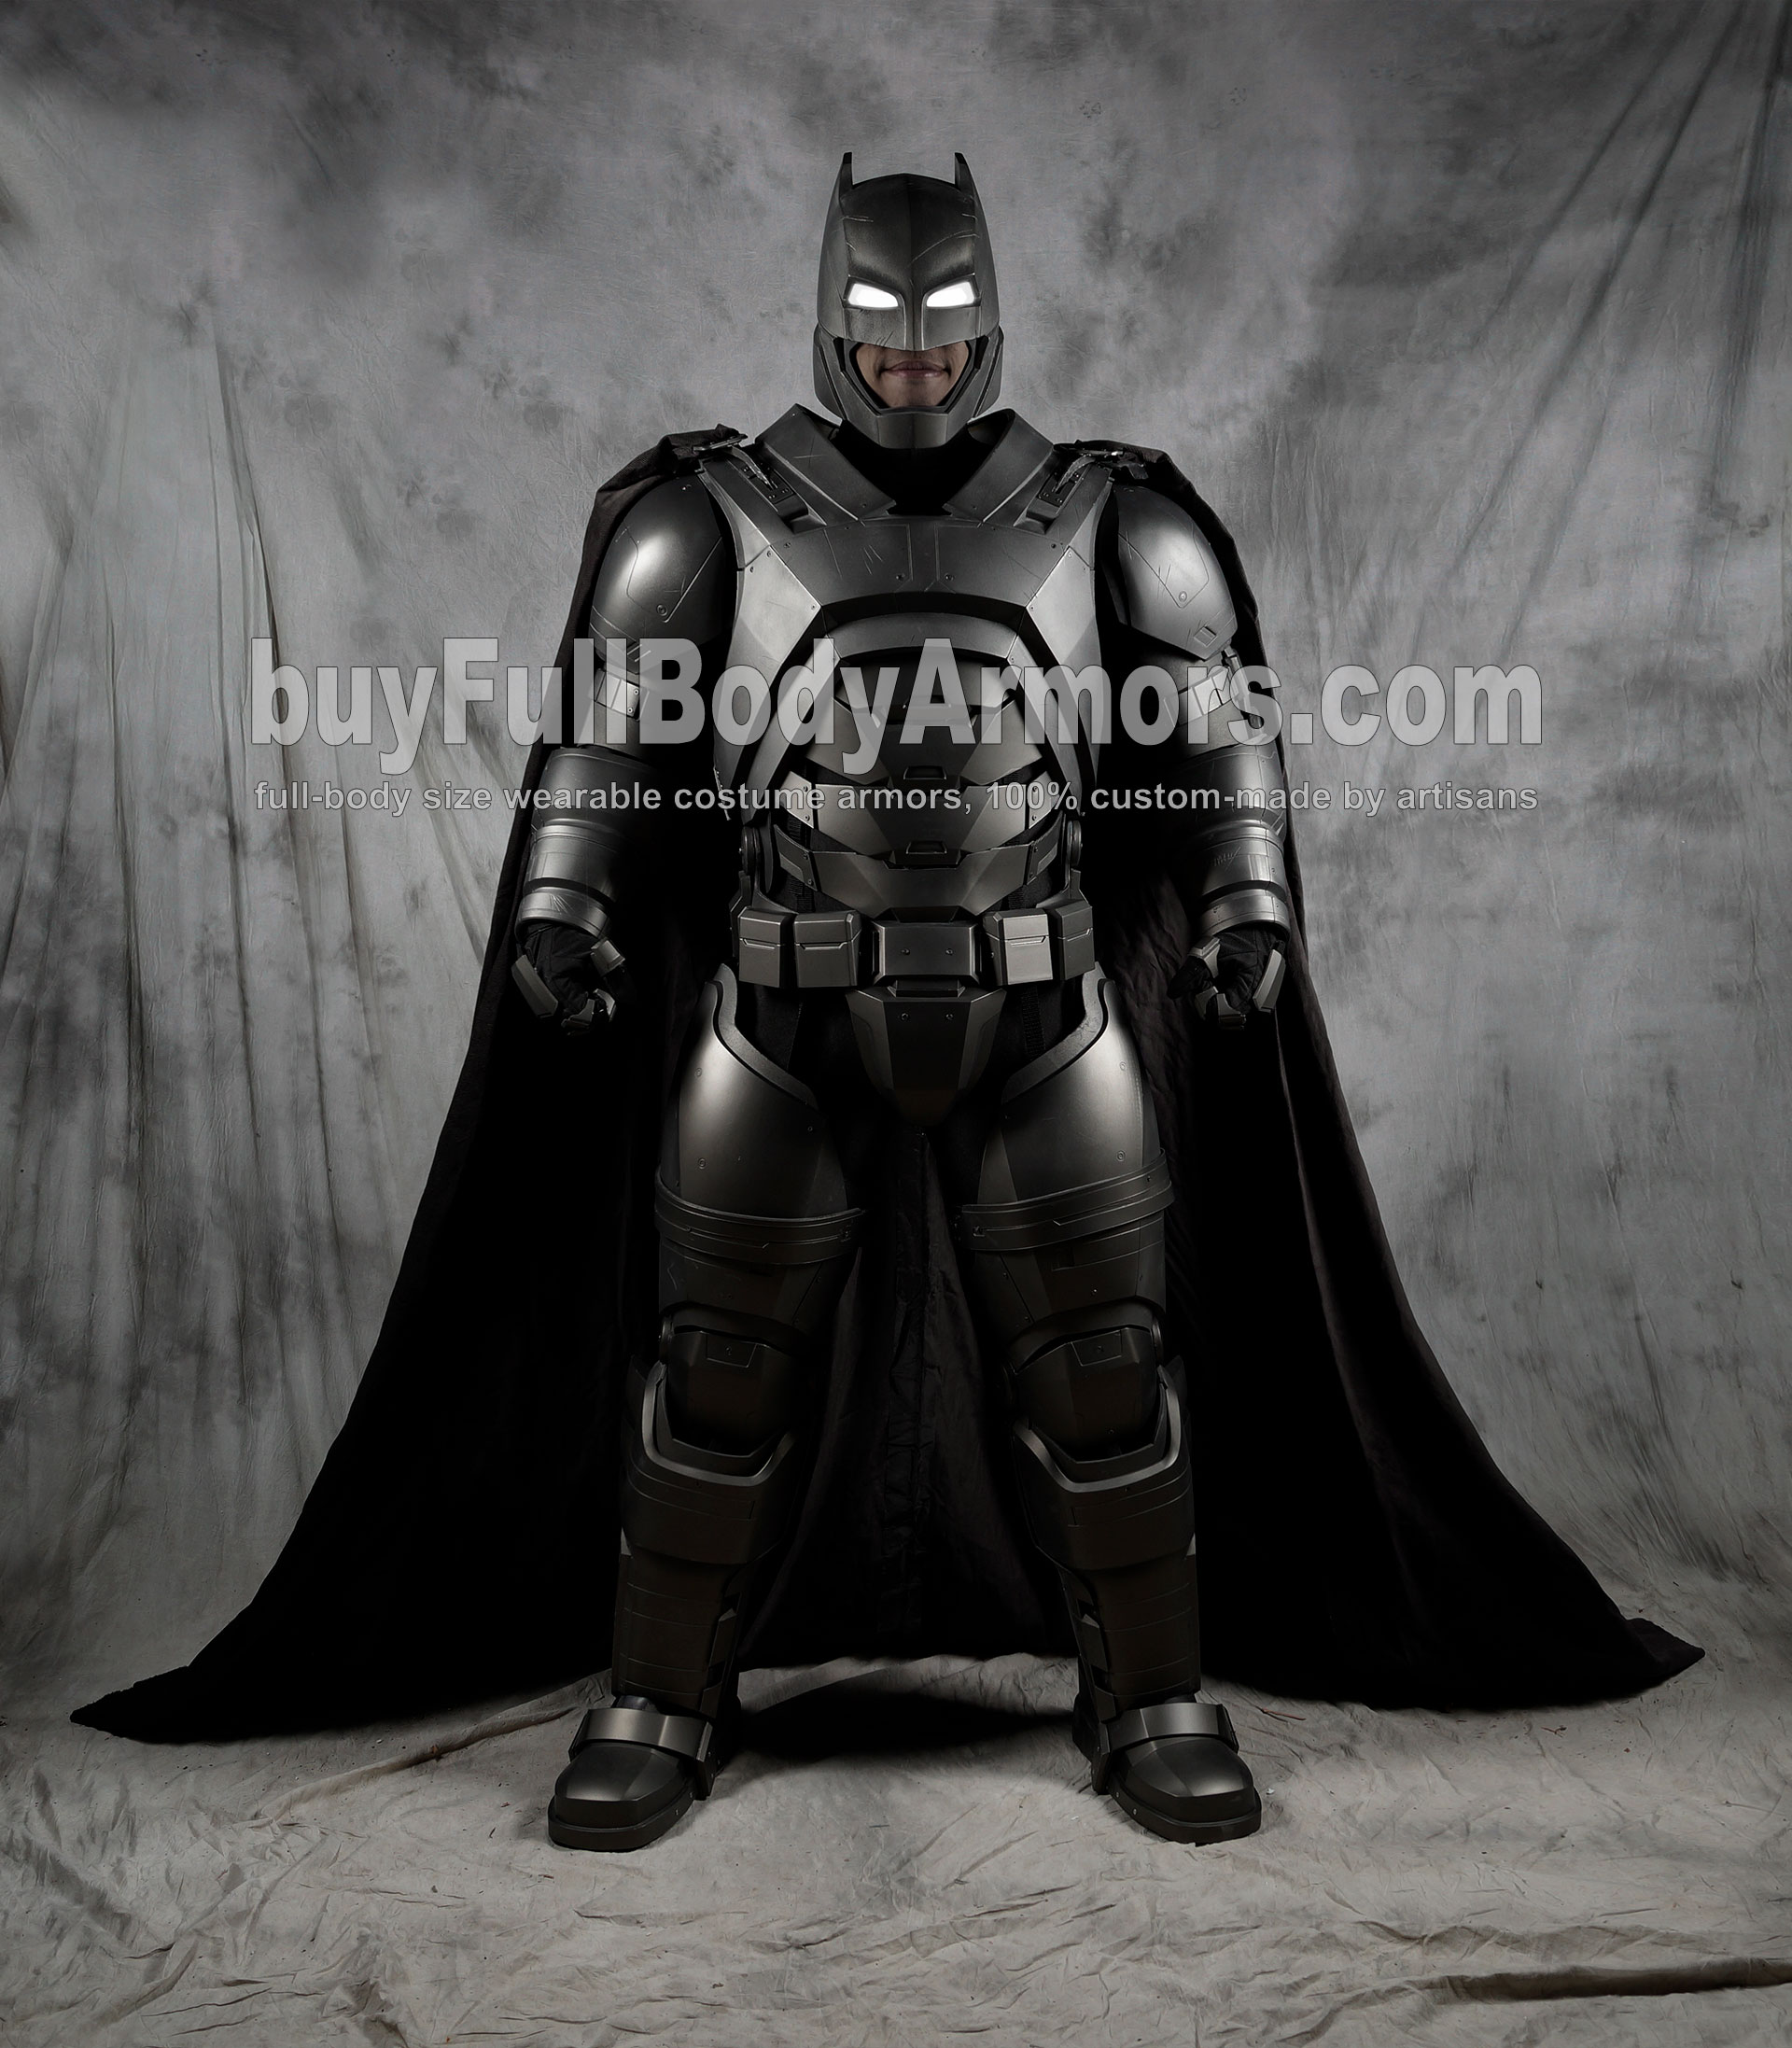 The Wearable Armored Batsuit (Batman armor suit costume) front